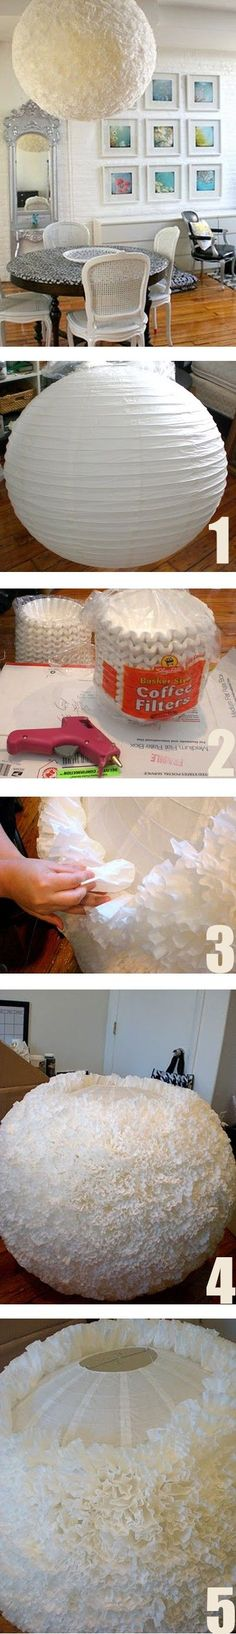 DIY Coffee Filter Lamp diy lighting craft crafts home decor easy crafts diy ideas diy crafts crafty lamp diy decor craft decorations how to home crafts tutorials teen crafts Diy Home Crafts, Diy Home Decor, Teen Crafts, Home Projects, Projects To Try, Coffee Filter Crafts, Coffee Filters, Deco Luminaire, Creation Deco